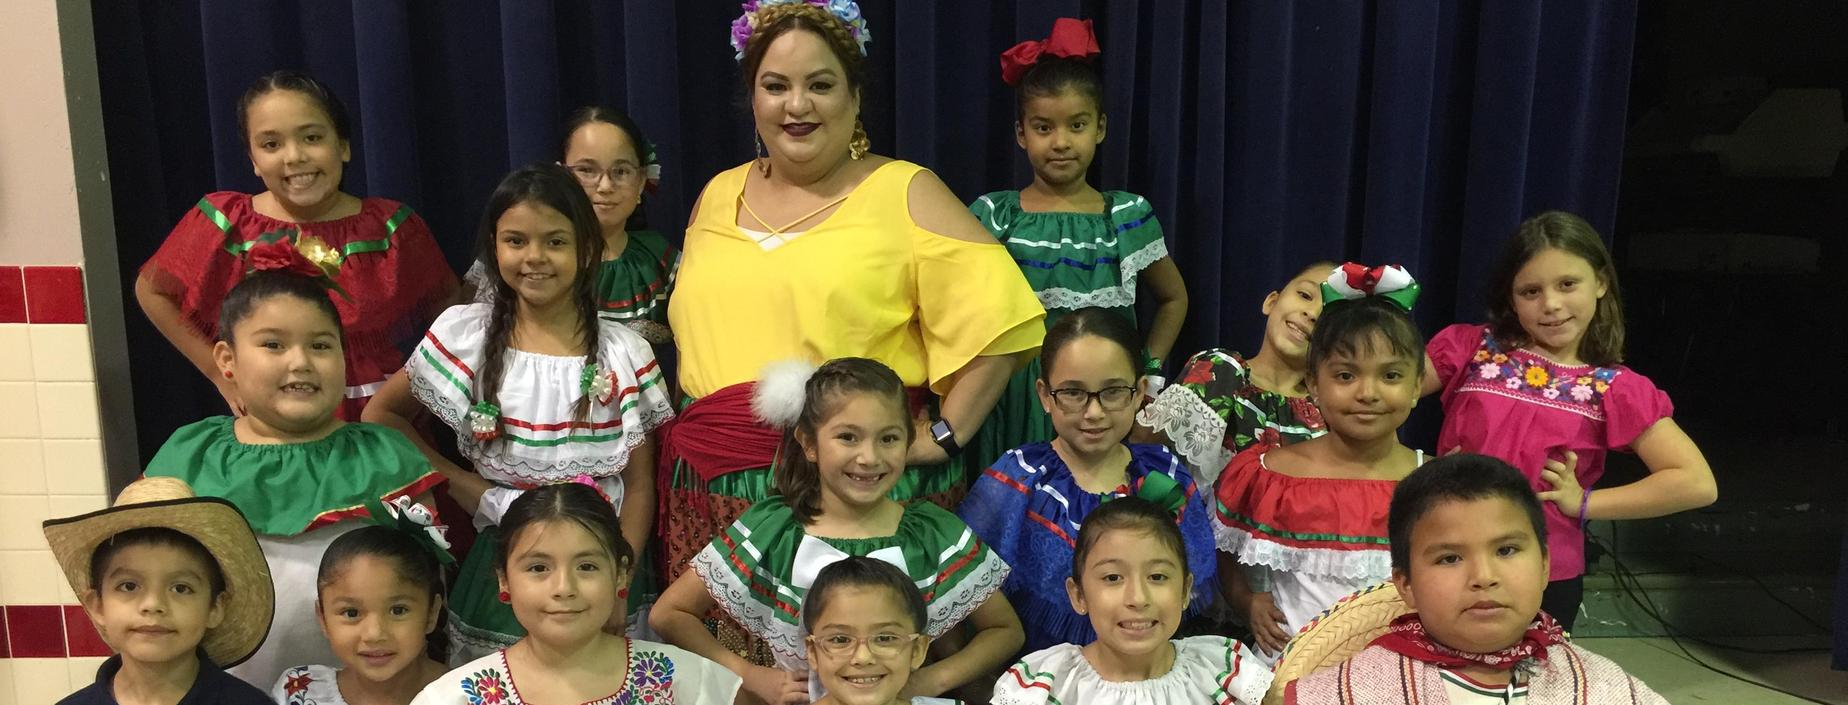 Group of students and Ms. Magadaleno in traditional Mexican clothes for dieciseis de septiembre